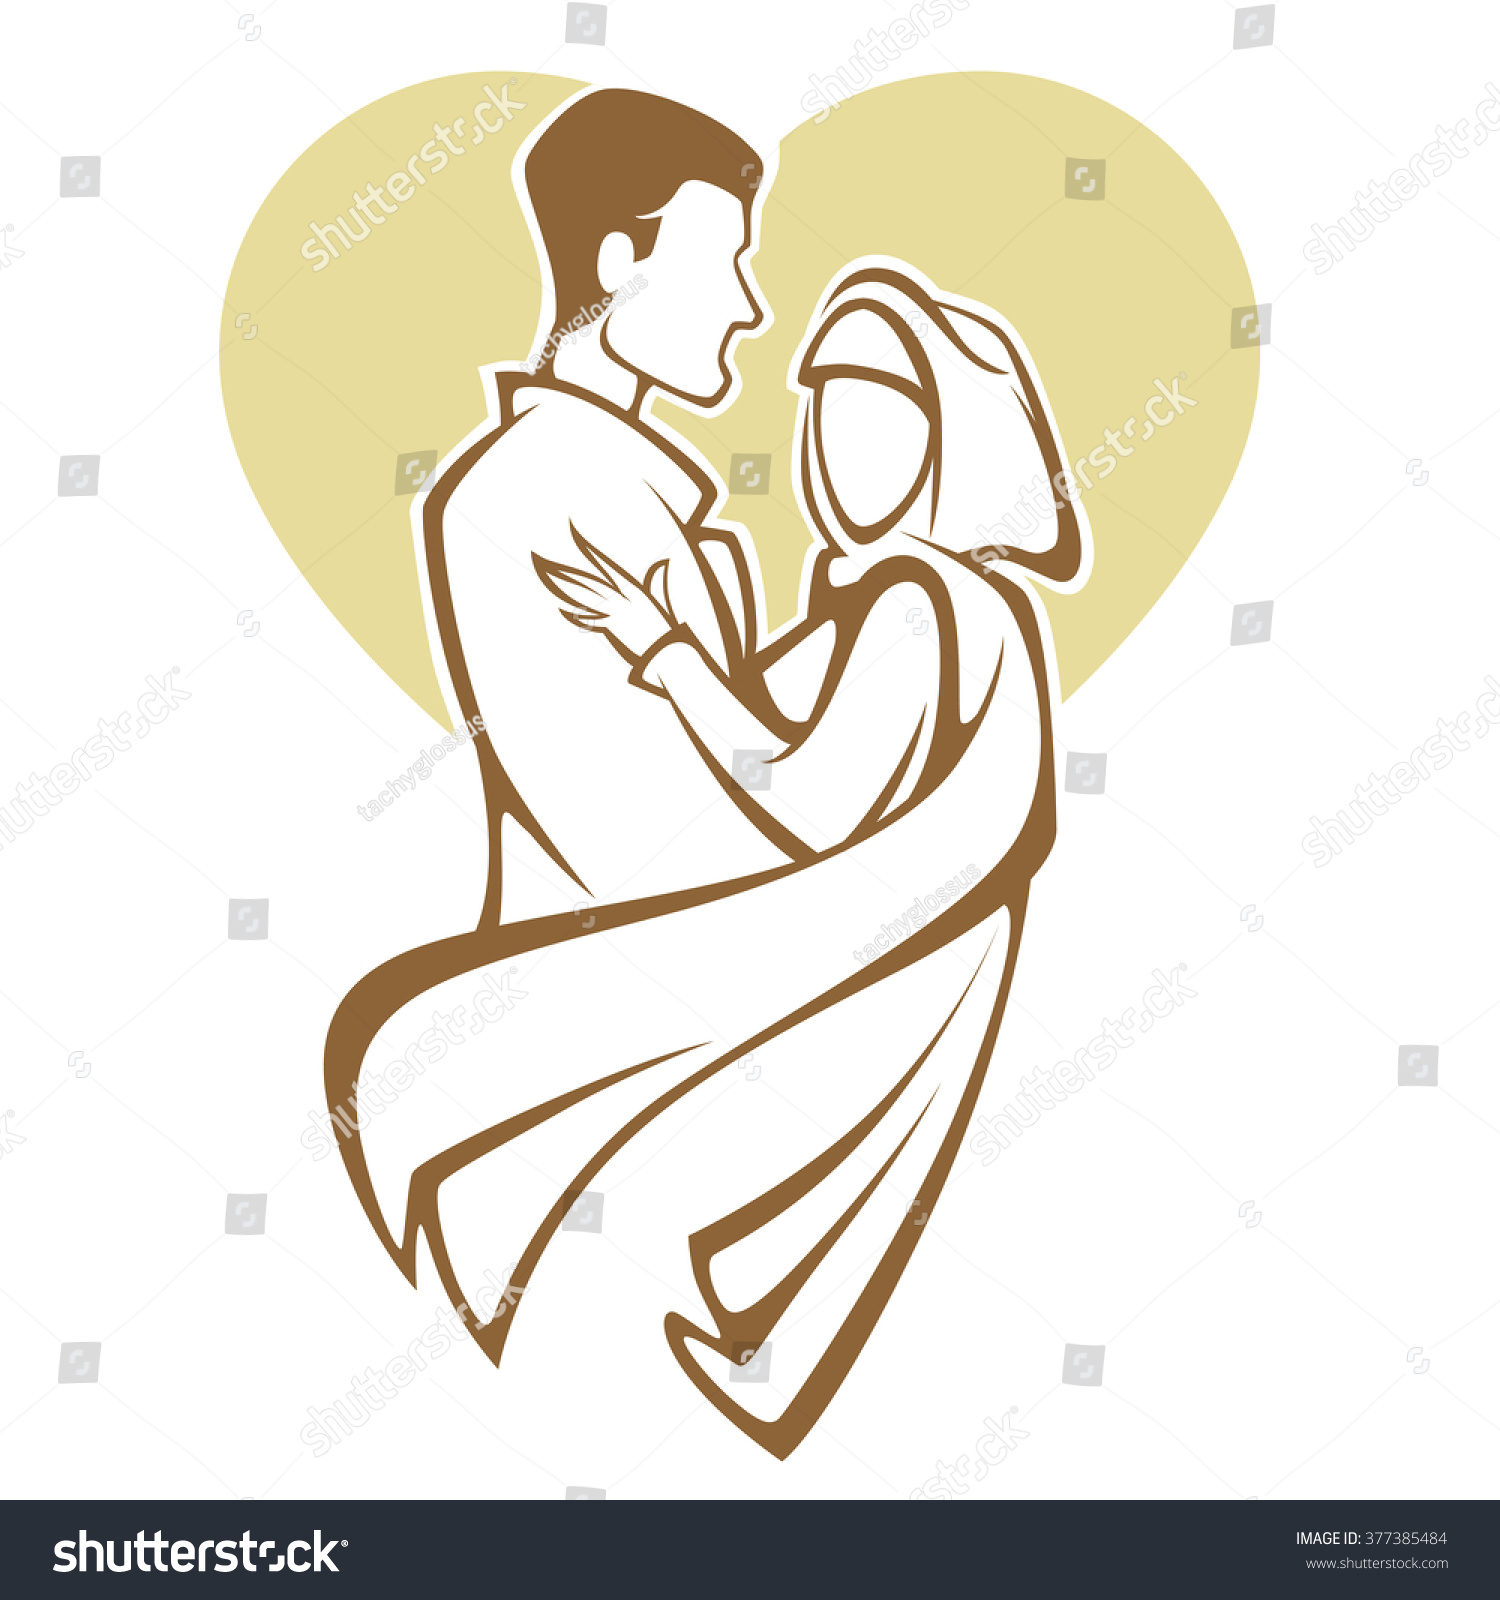 hickory flat muslim dating site View free background profile for deniz franke (tuncay) and religious views are listed as muslim howard moore hickory flat, ms pf patrick franke johnston.